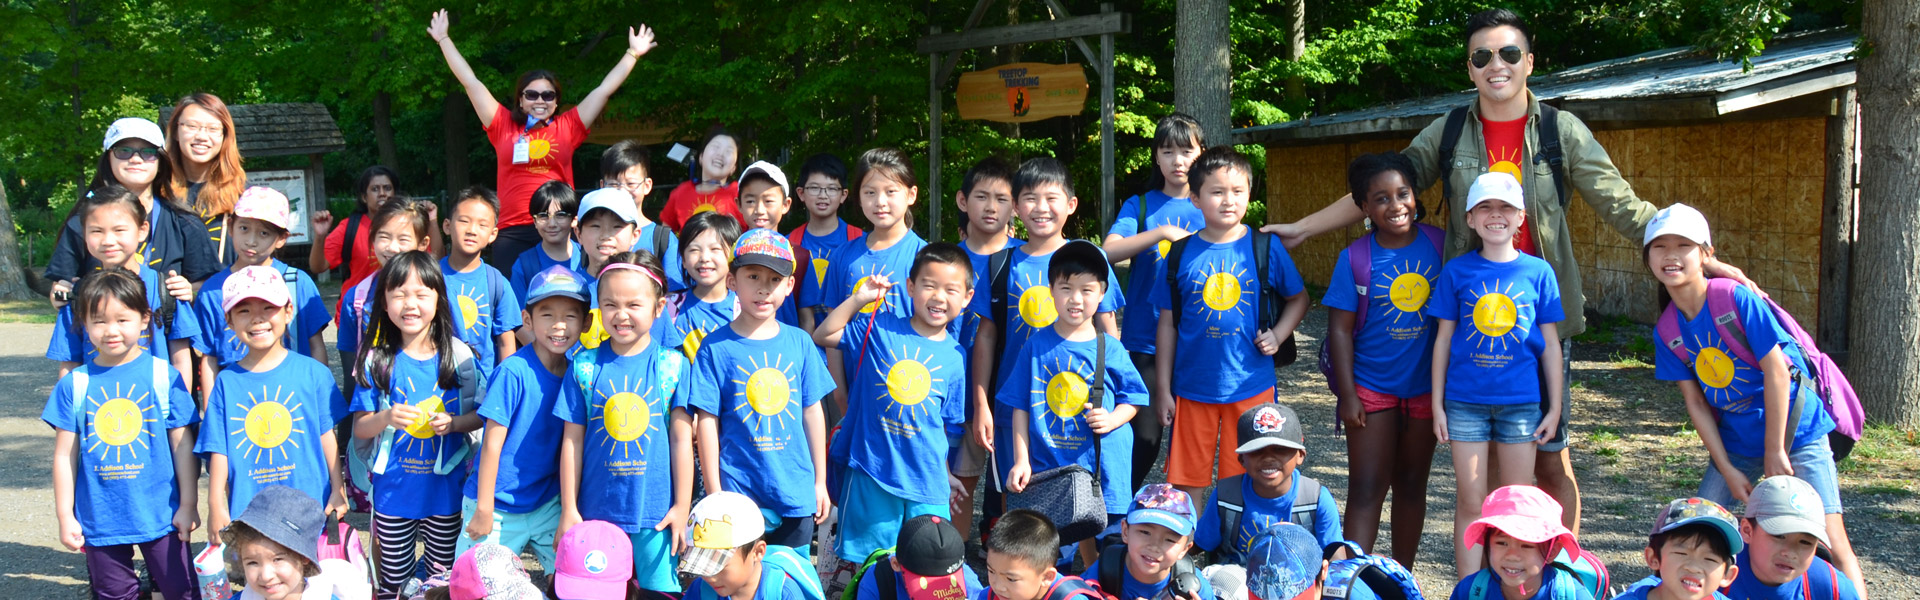 J. Addison Private School 2 in 1 Summer Camp for Ages 4 to 12